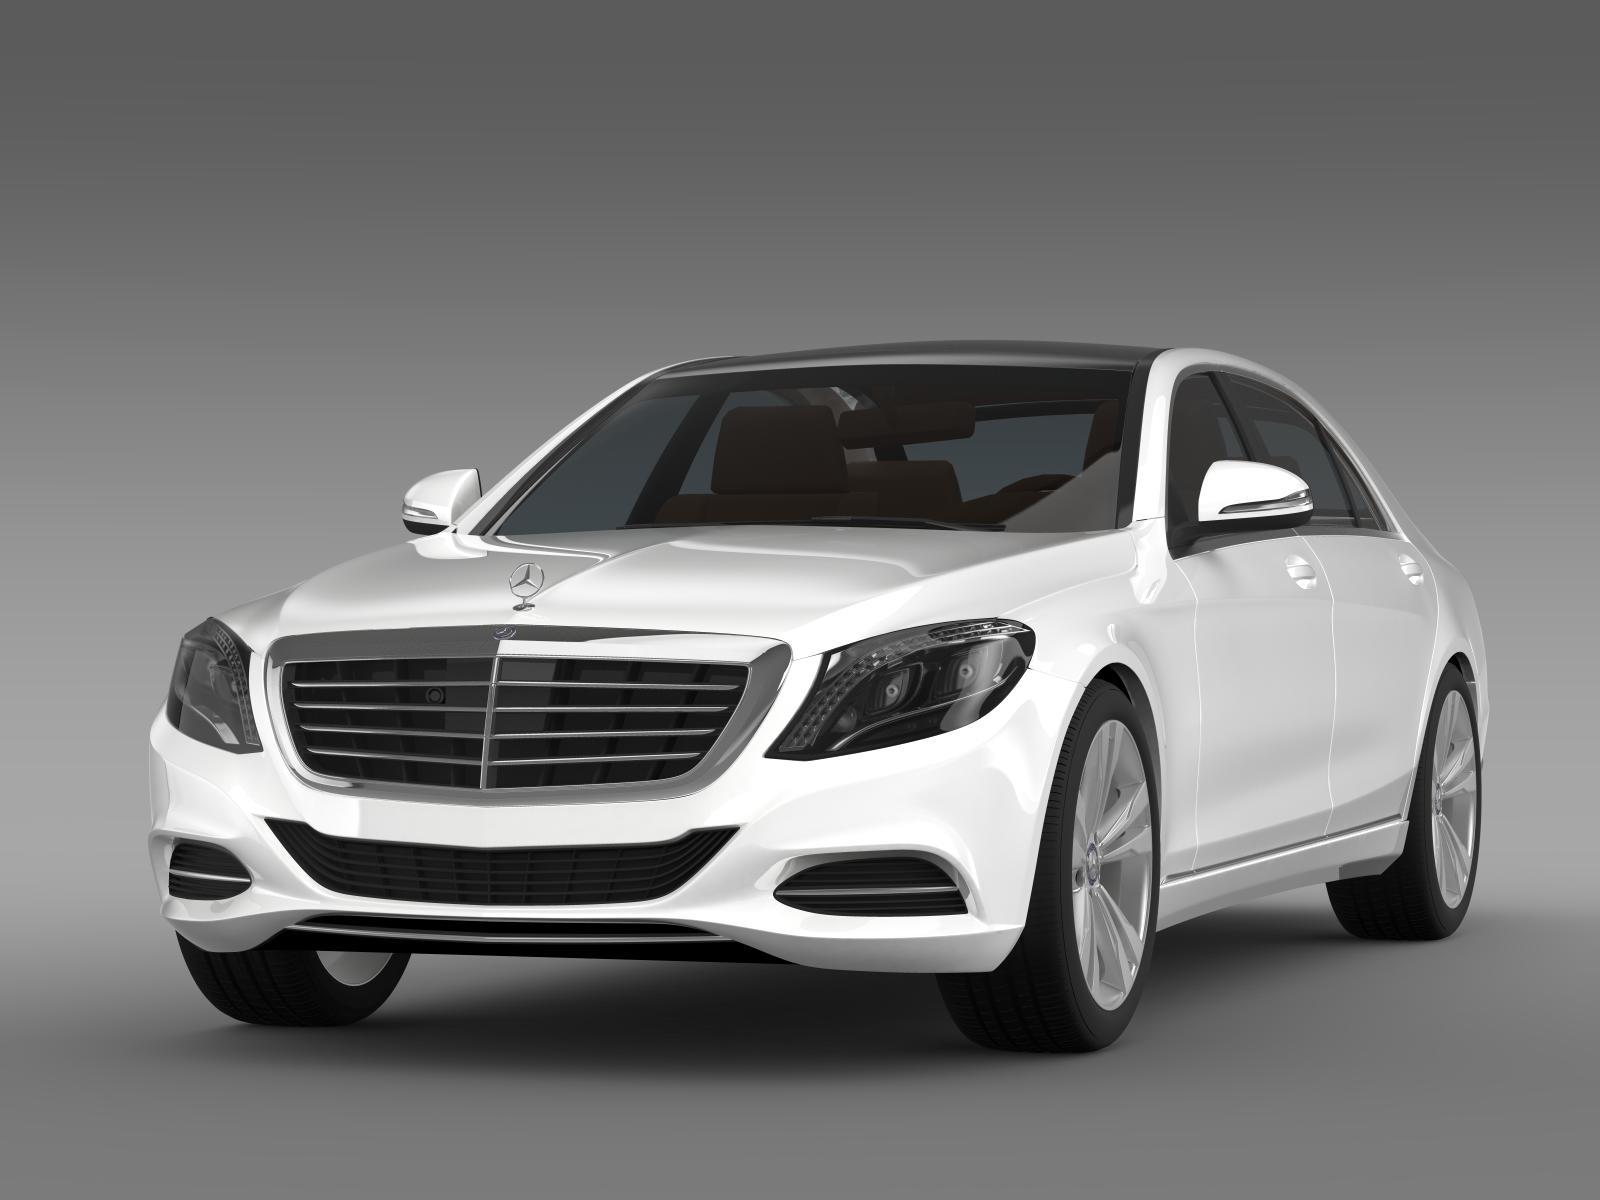 mercedes benz s 350 bluetec w222 2013 by creator 3d 3docean